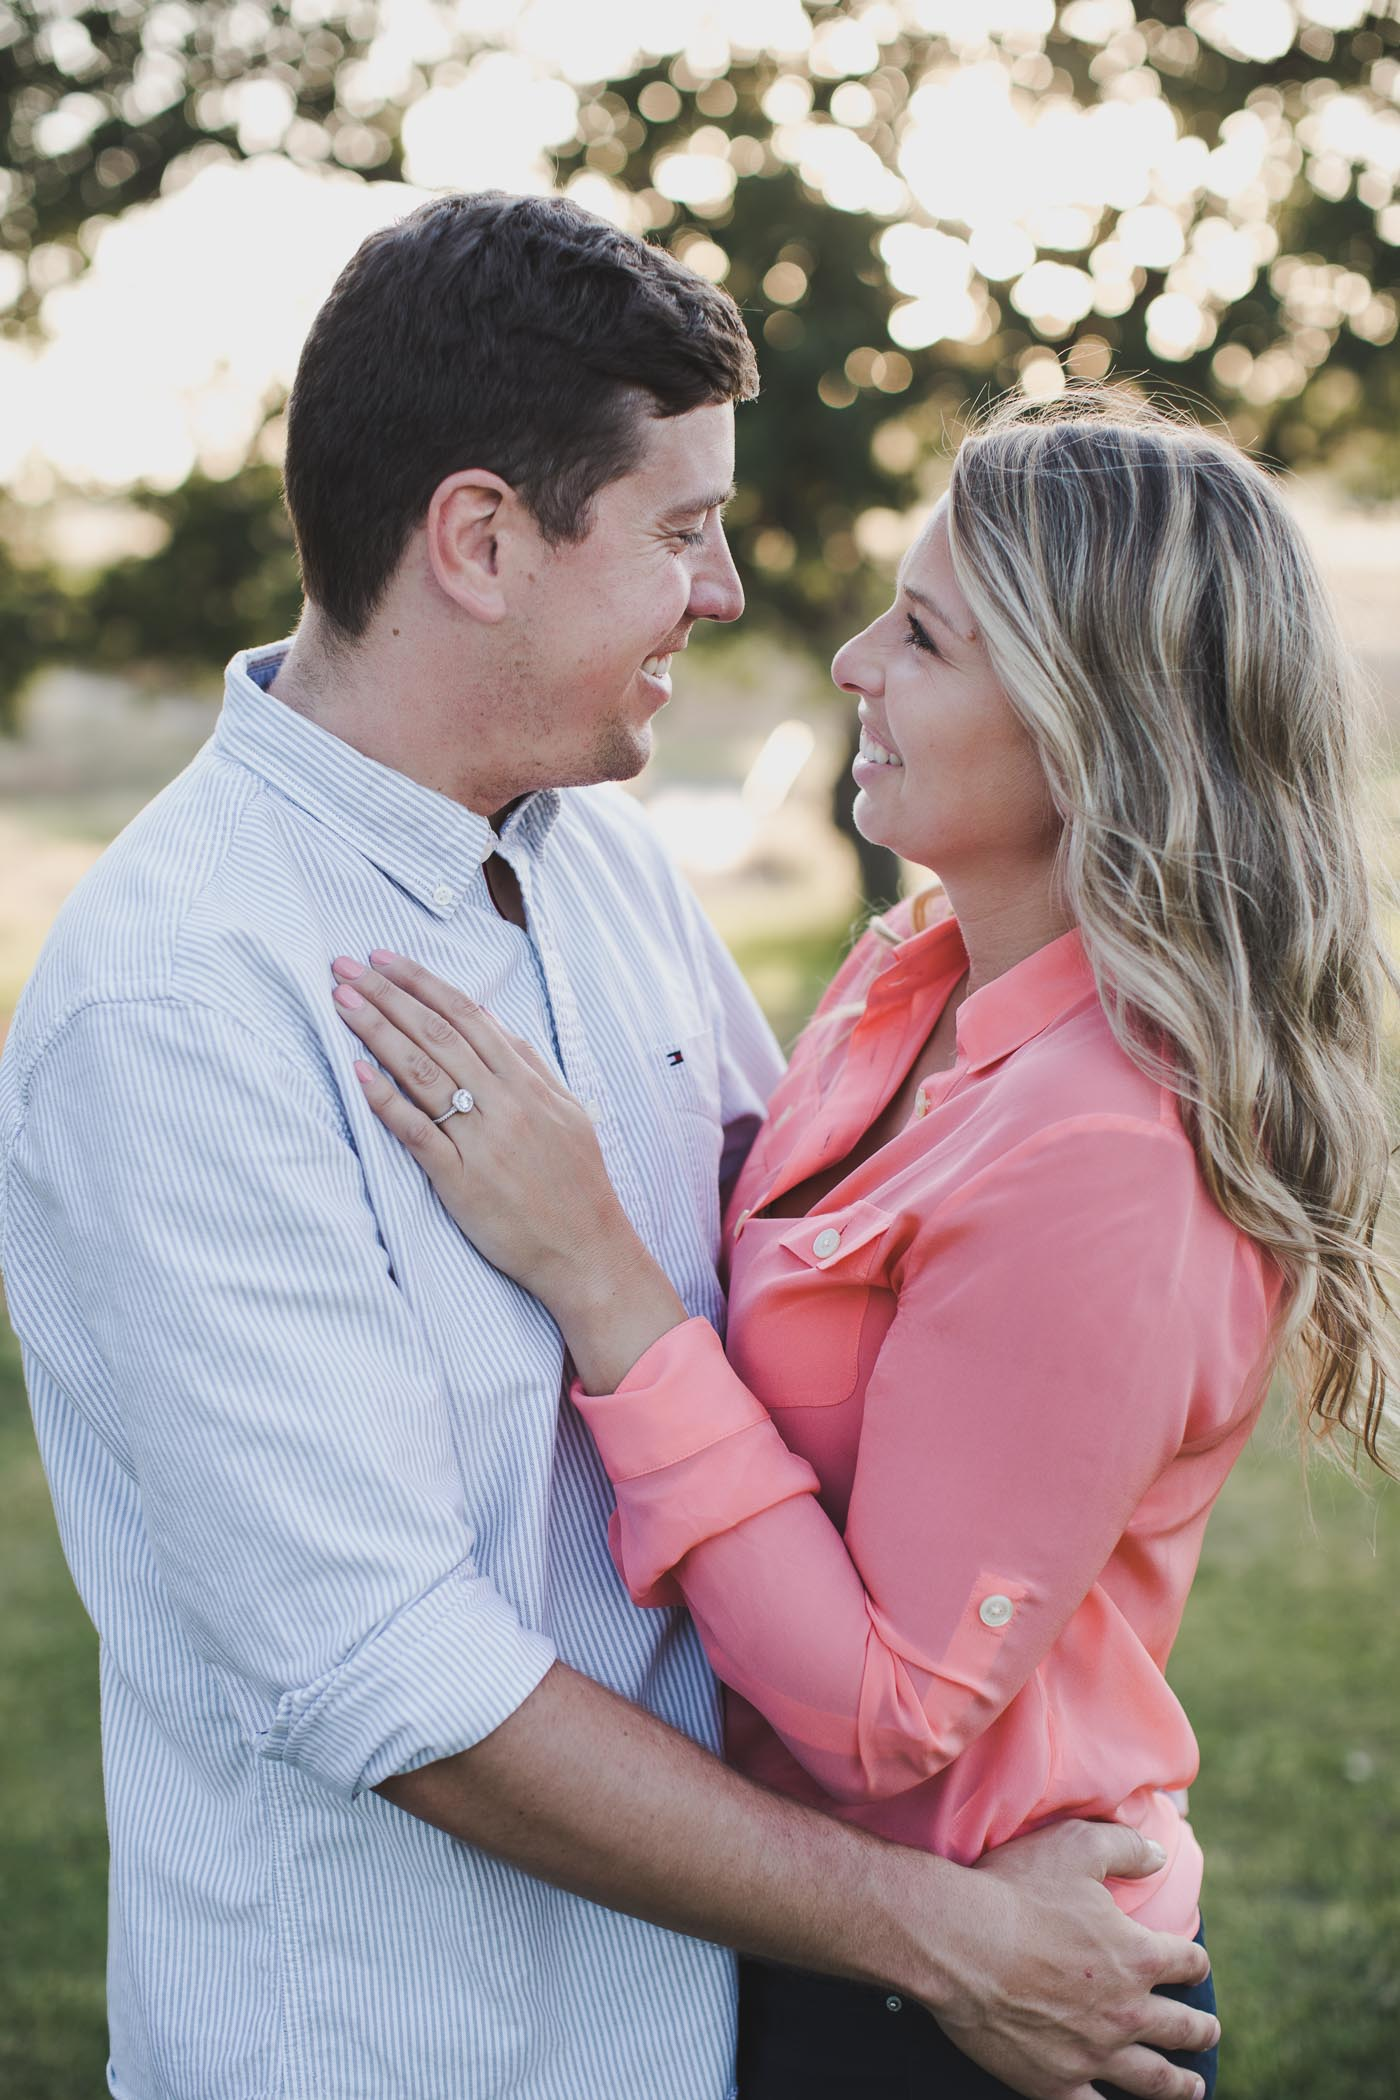 AVH_Photography_upper_bidwell_park_engagement_photography_chico_california_spring_bidwell_golf_course_0027.jpg